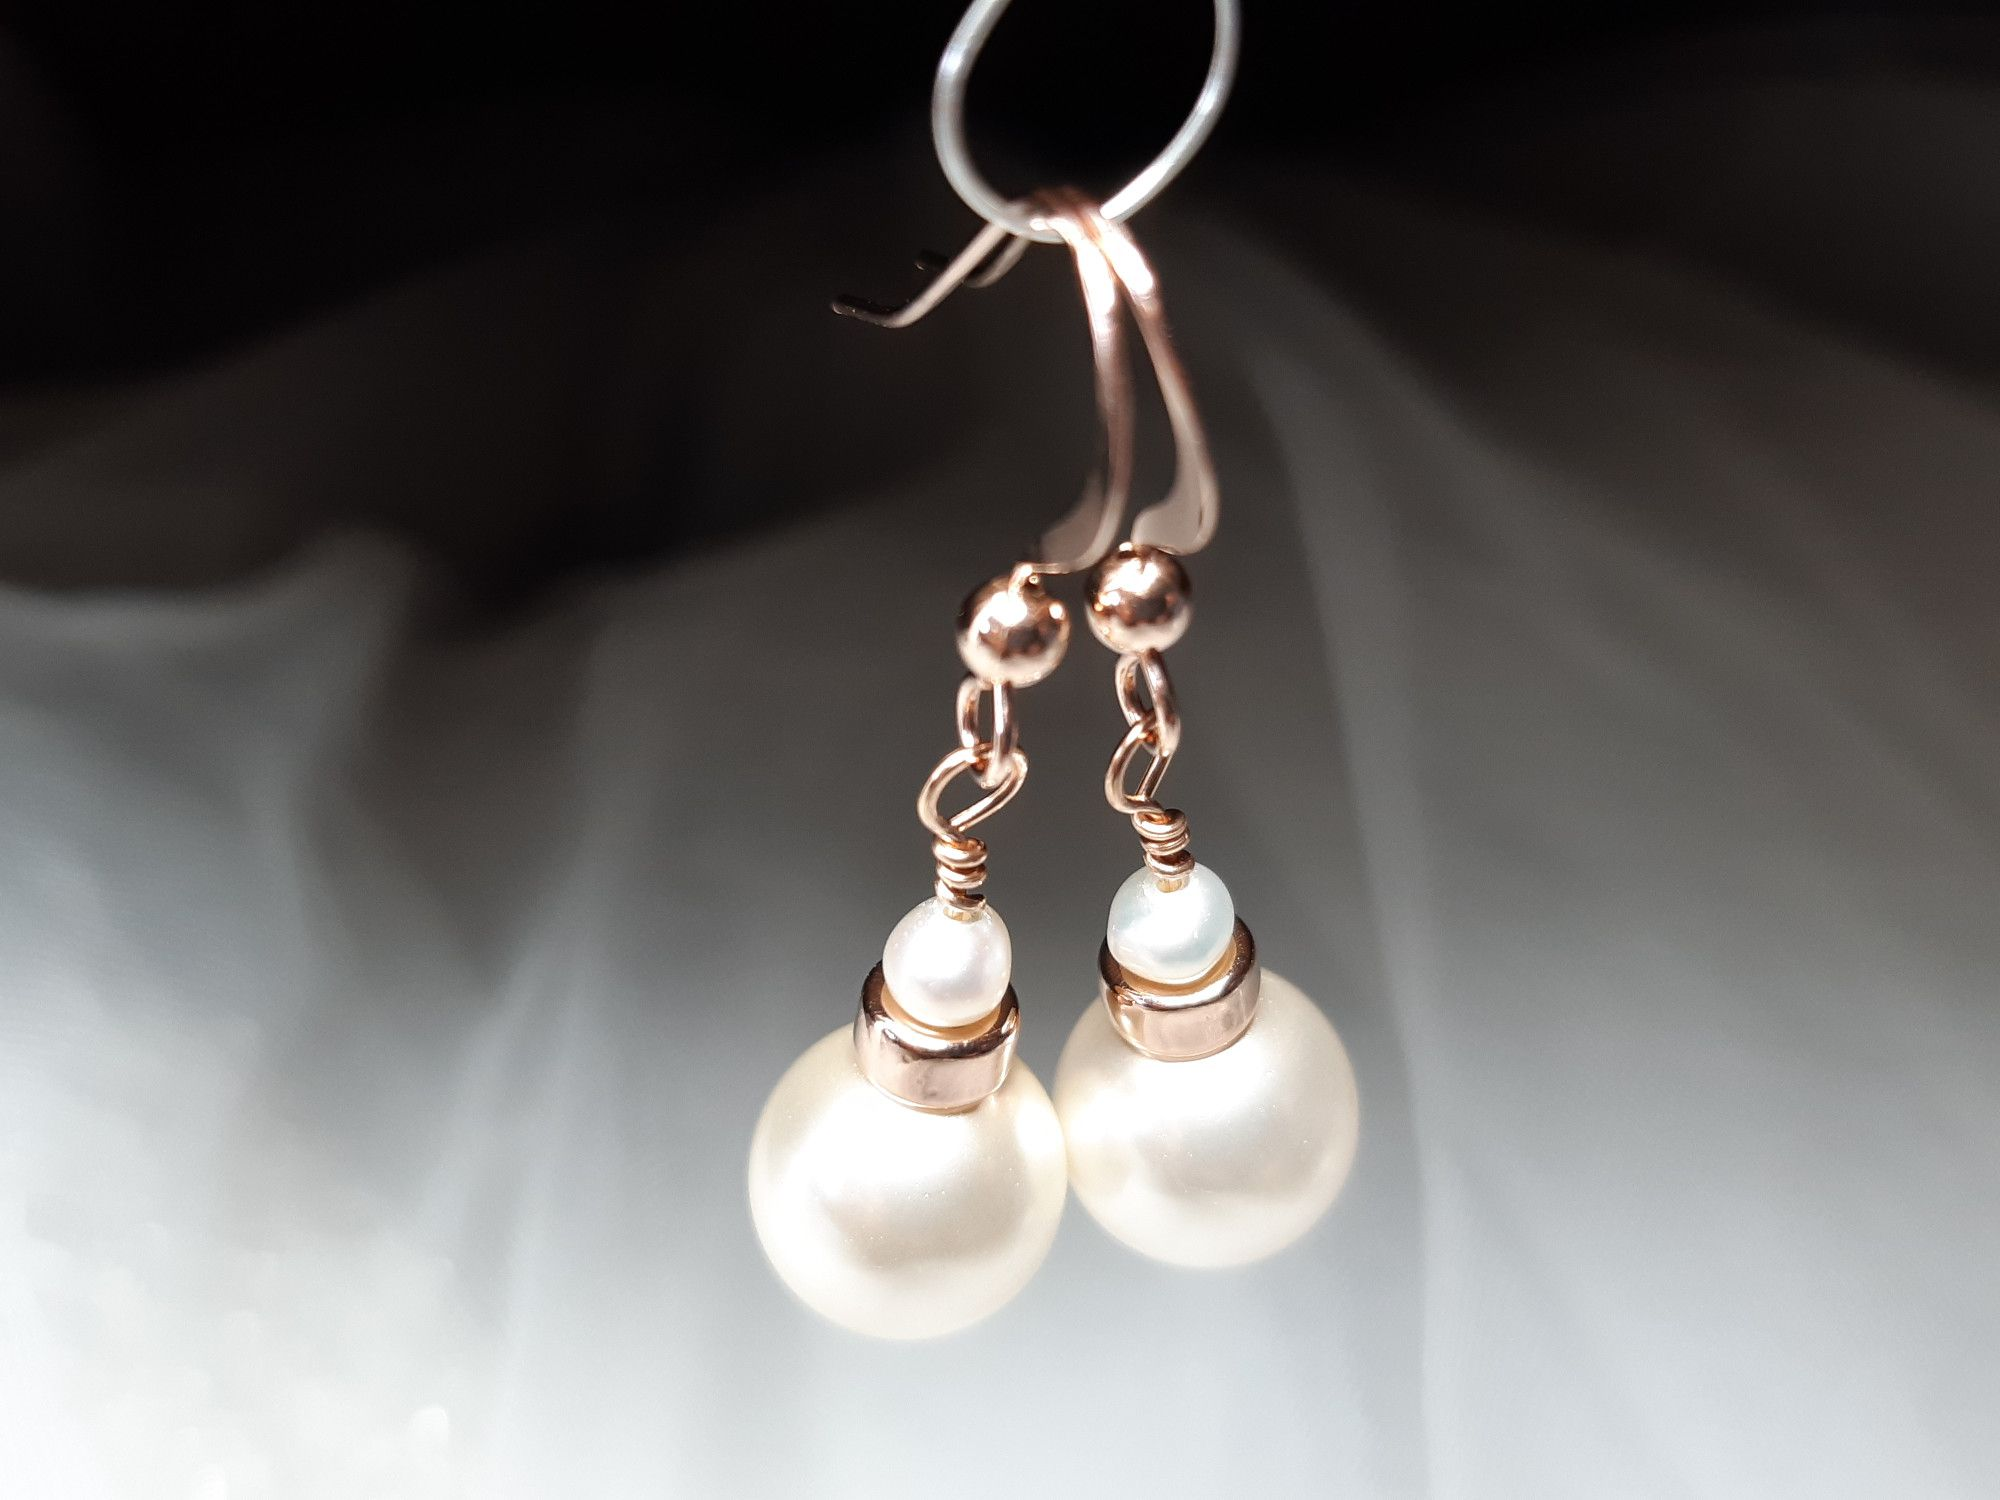 Occasion-bridal-wedding-pearl earrings with rose gold-4